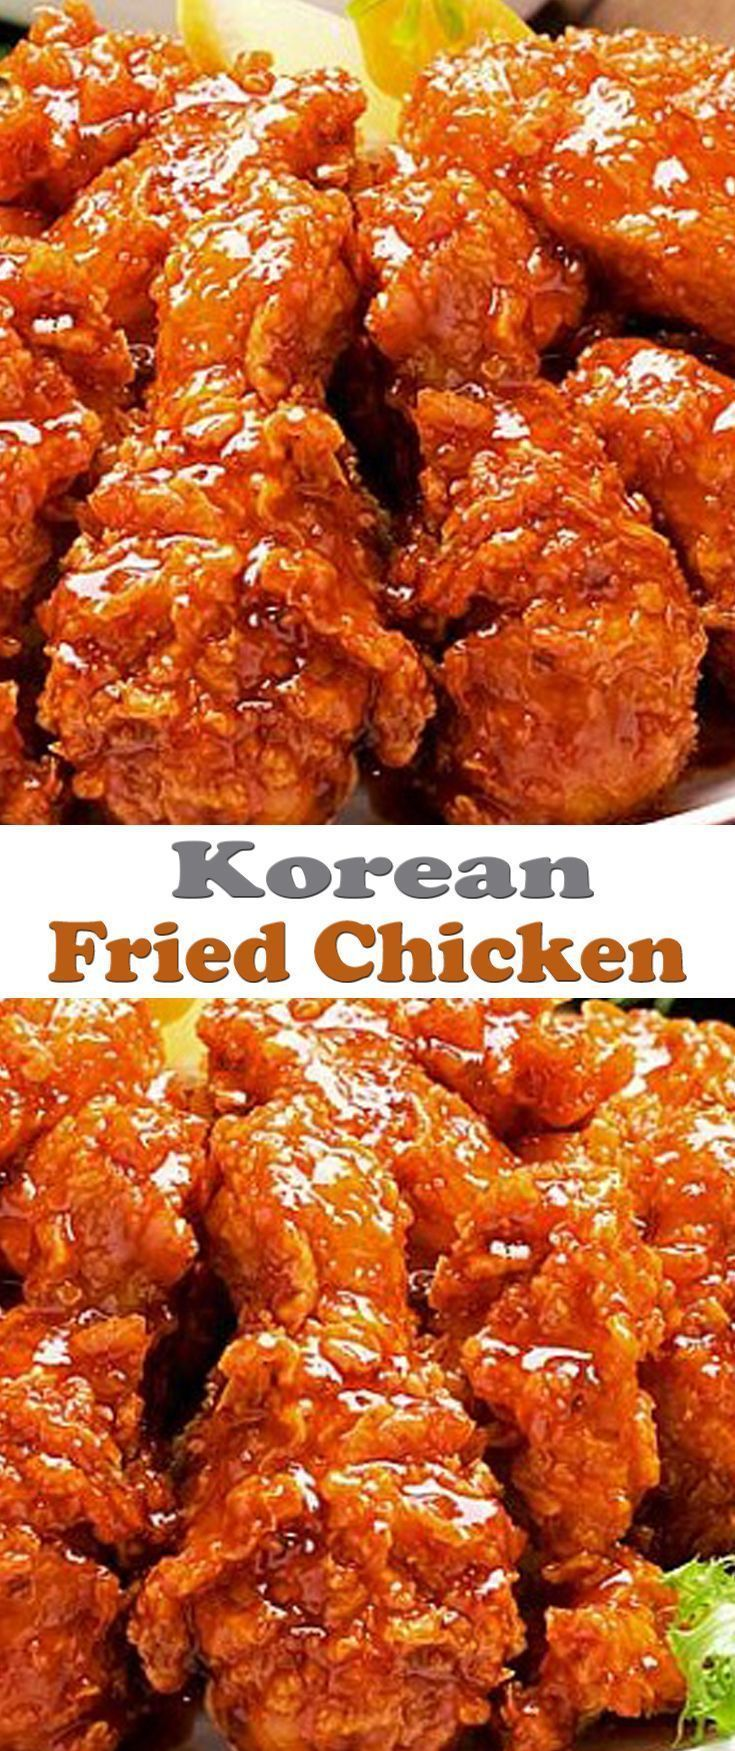 Korean Fried Chicken Recipe. #CompleteRecipes.com #recipe #recipes #food #foodgasm #cleaneating #healthyfood #healthy #healthyrecipes #koreanfoodrecipes